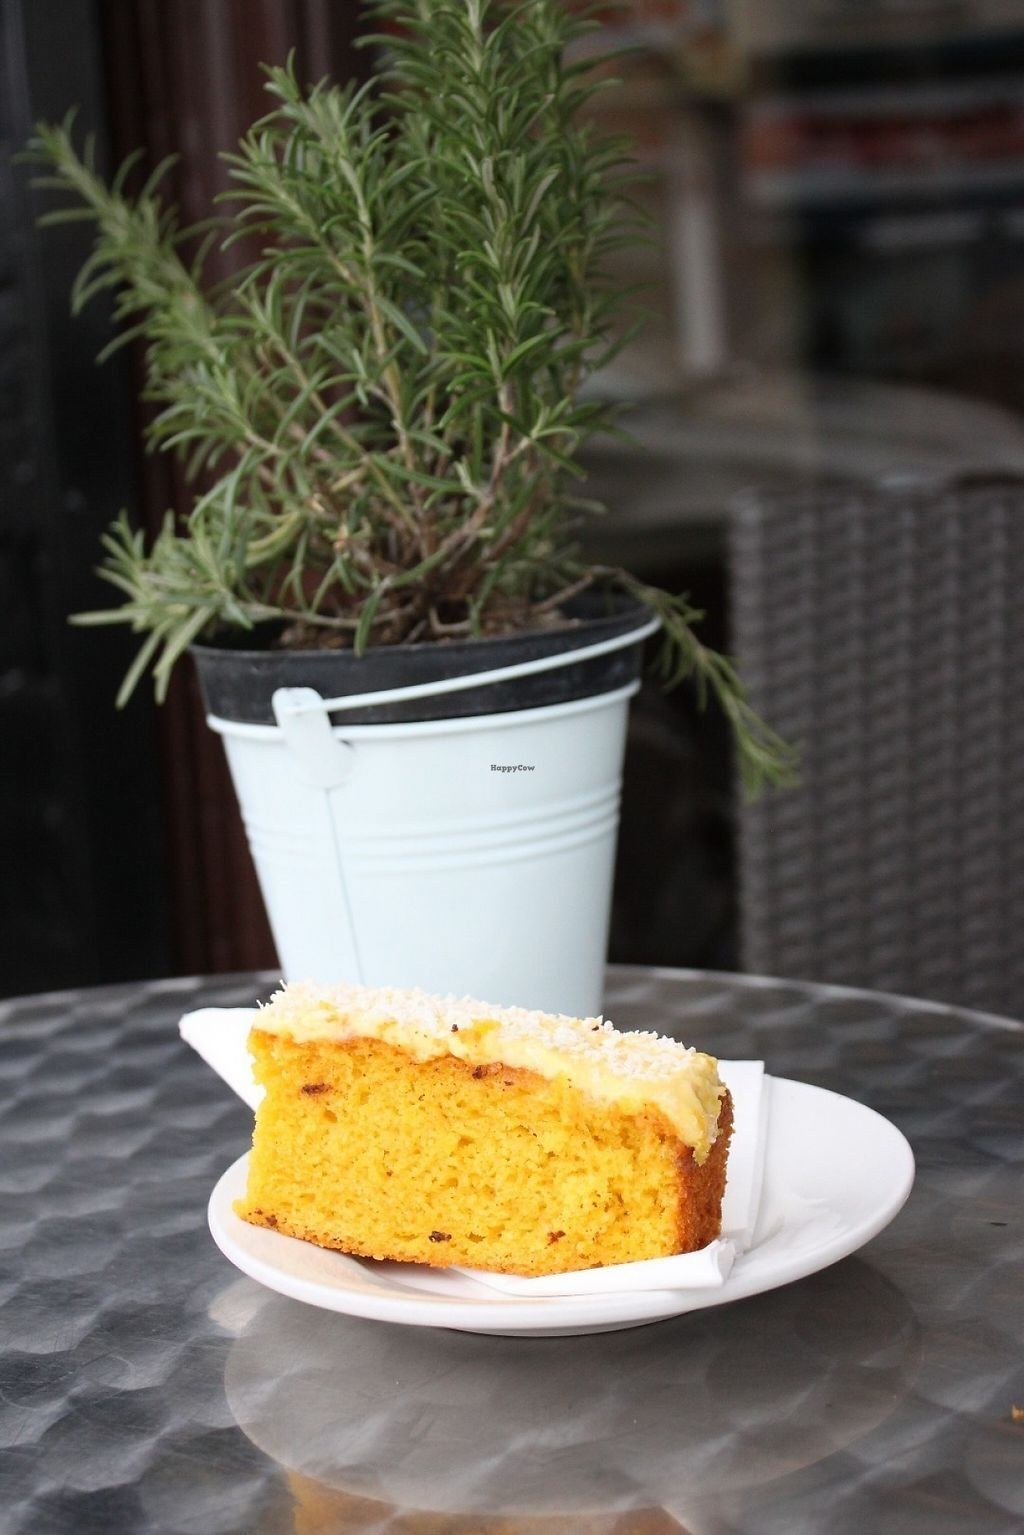 """Photo of Crumbs Kitchen  by <a href=""""/members/profile/charclothier"""">charclothier</a> <br/>mango and coconut vegan cake by naturally kind food  <br/> May 5, 2017  - <a href='/contact/abuse/image/45153/255991'>Report</a>"""